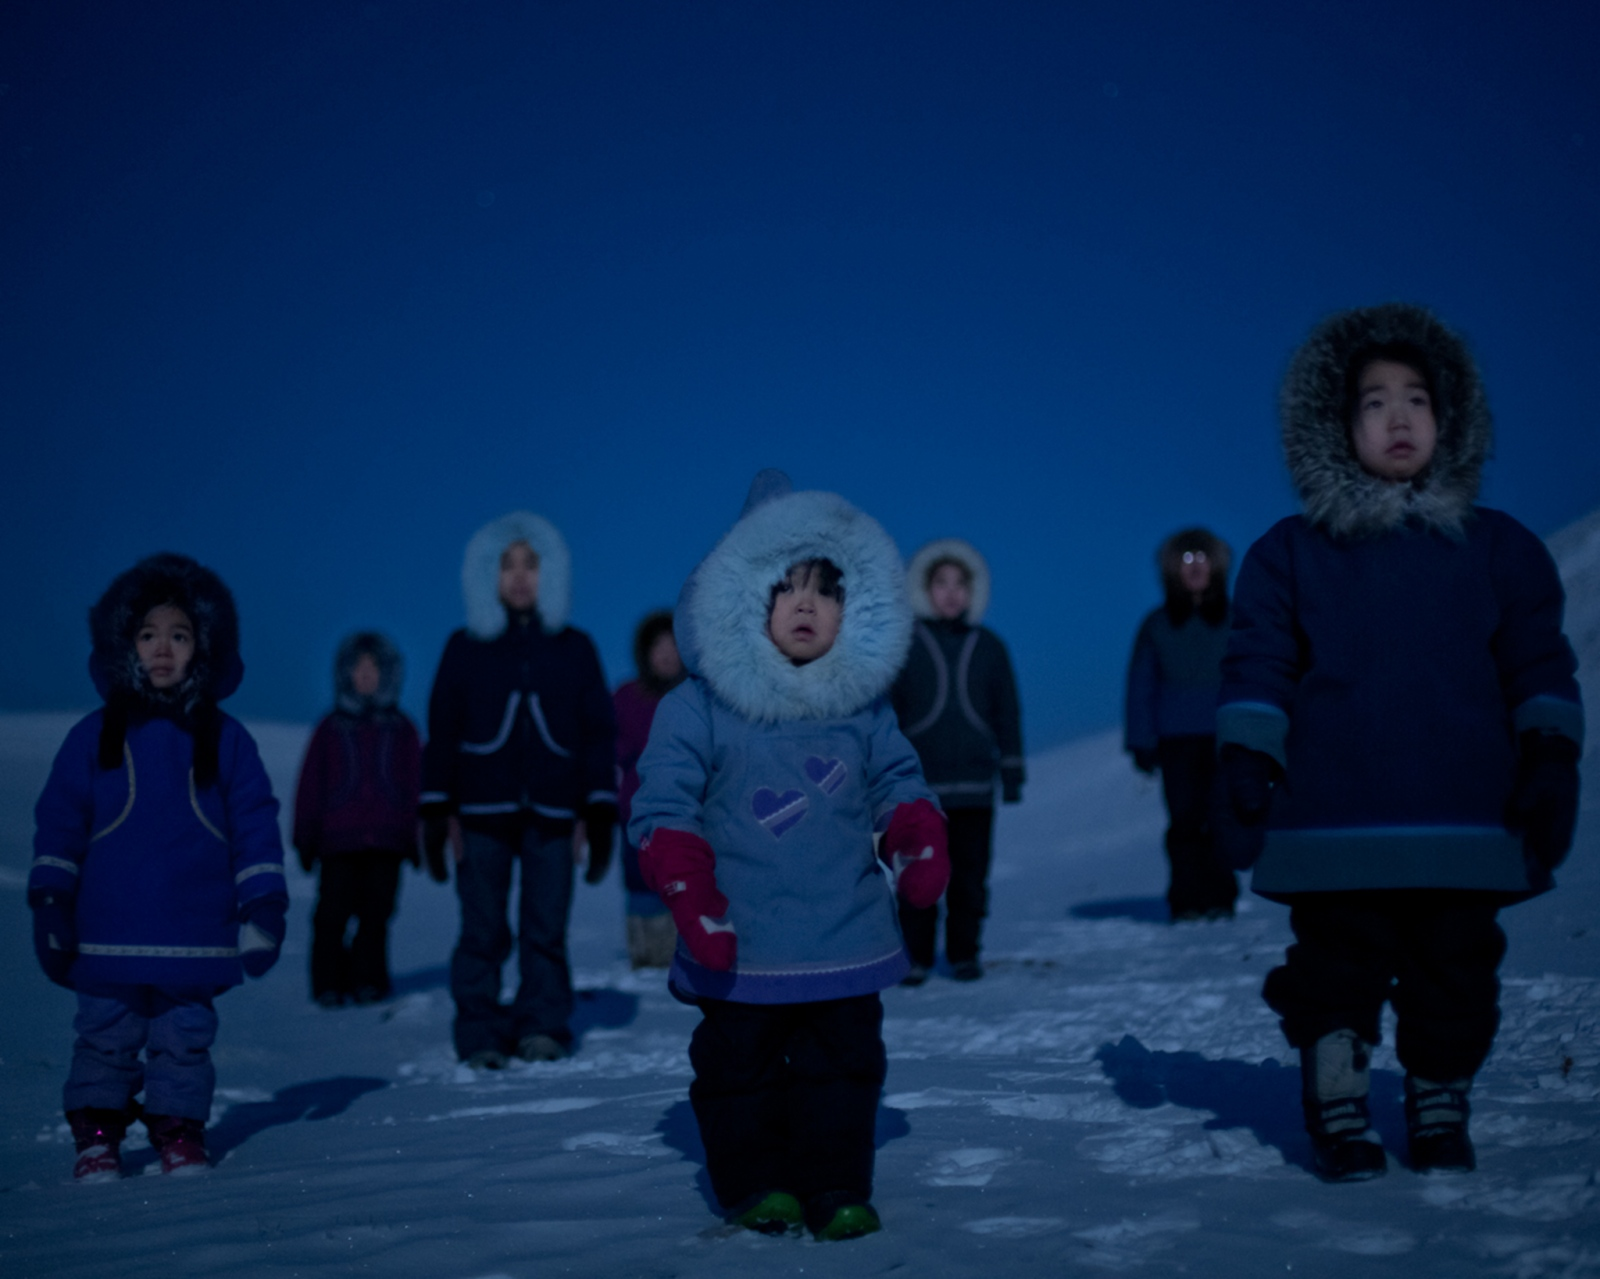 The Tatatoapik family takes in the light of a particularly bright full moon in February. In the depths of winter, it is safe to drive a truck or SUV out onto the sea ice and into the mountains, as the family had done for this occasion.